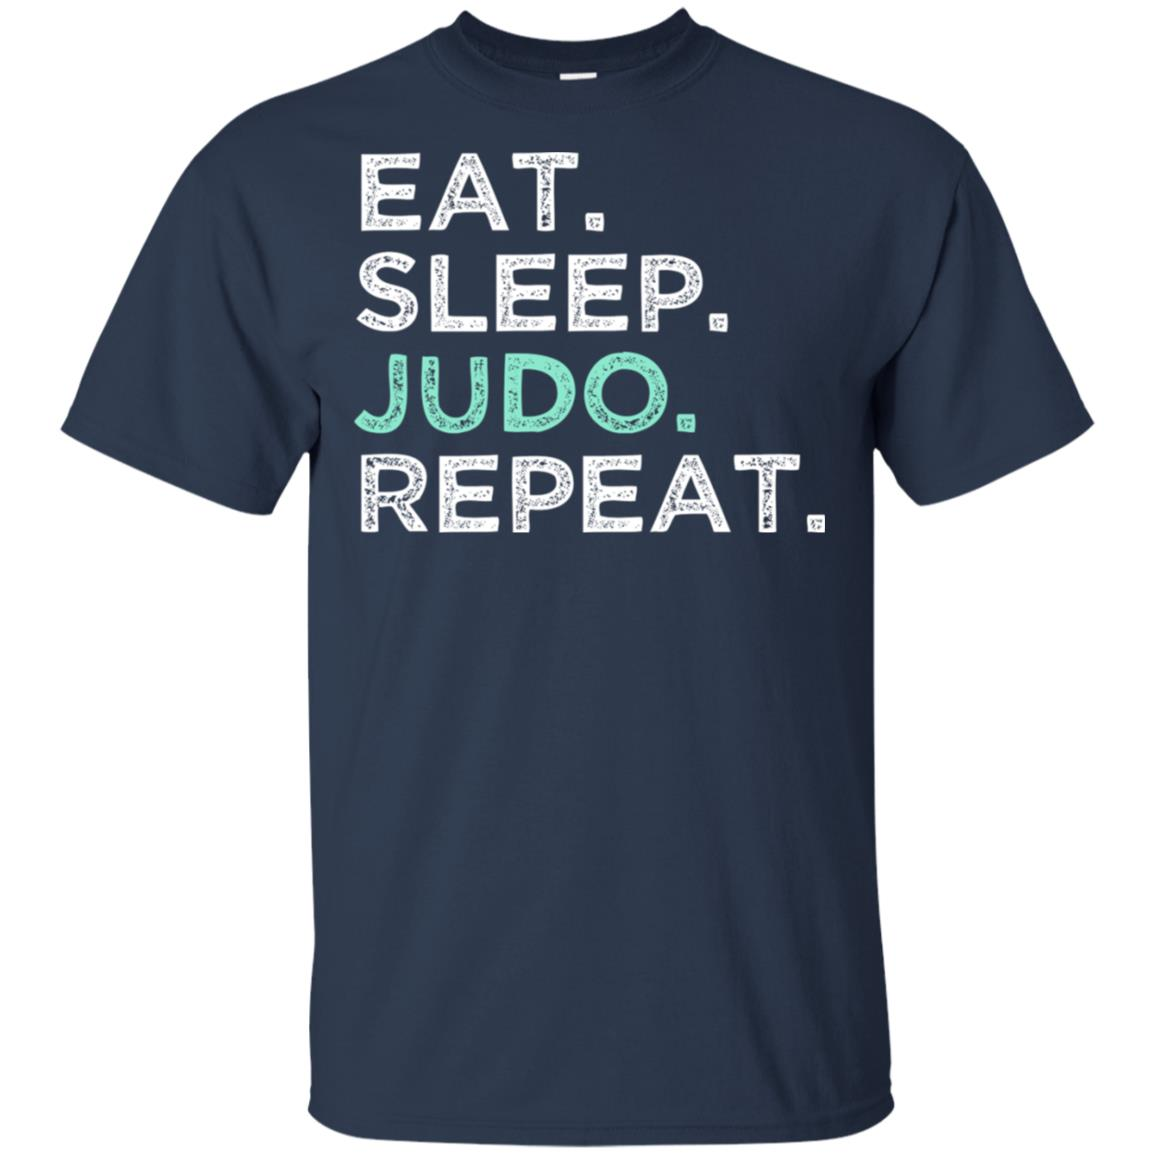 Eat Sleep Judo Repeat. Karate Defense Judo Unisex Short Sleeve